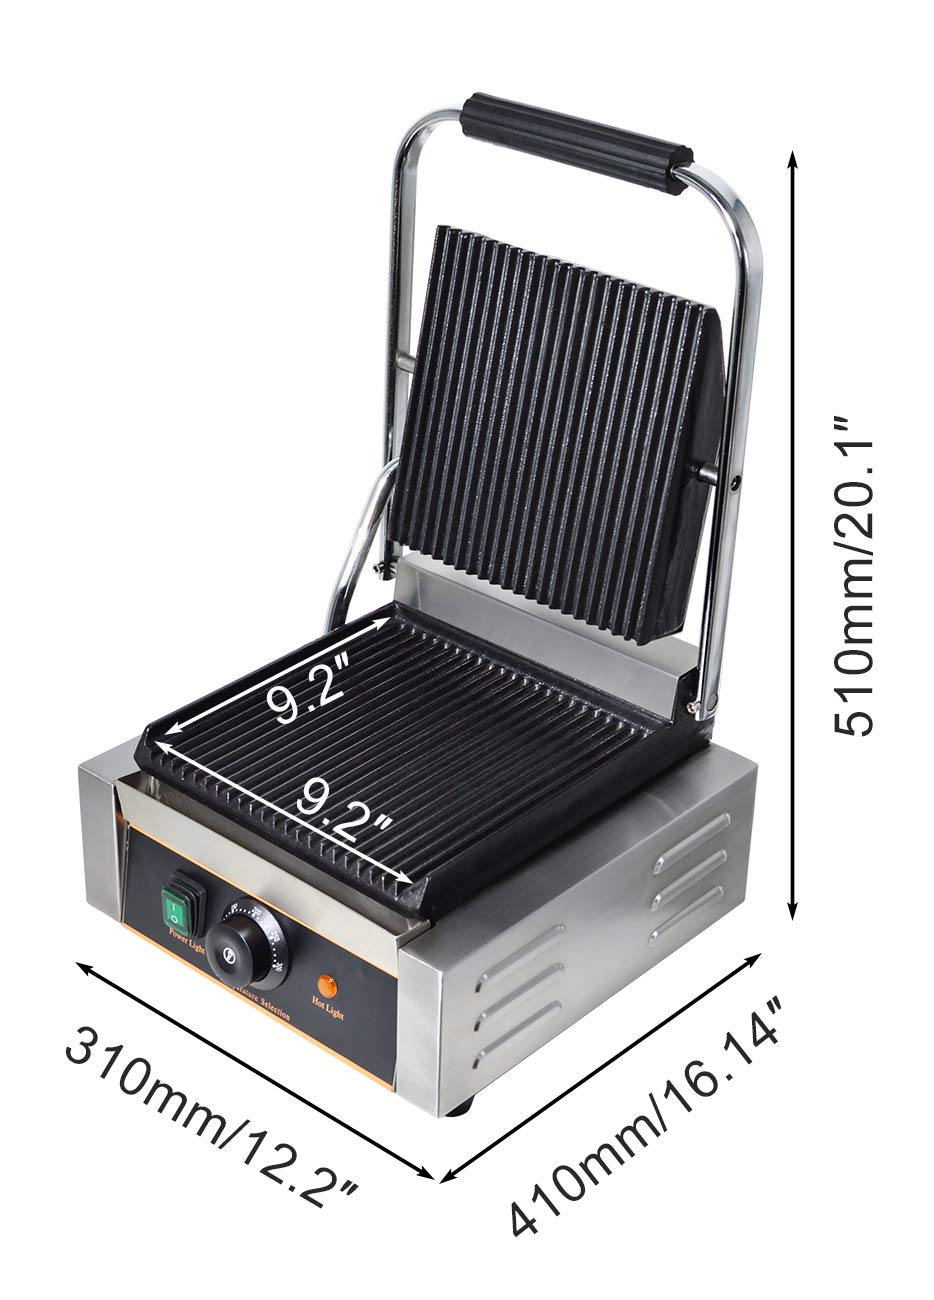 NJTFHU Commercia Sandwich Press Grill Electric Panini Maker Machine Non-Stick Cooking Surface Plate Faster Heat Temperature Control 122/°F-572/°F 1800W Stainless Steel Portable Home Kitchen Griddle